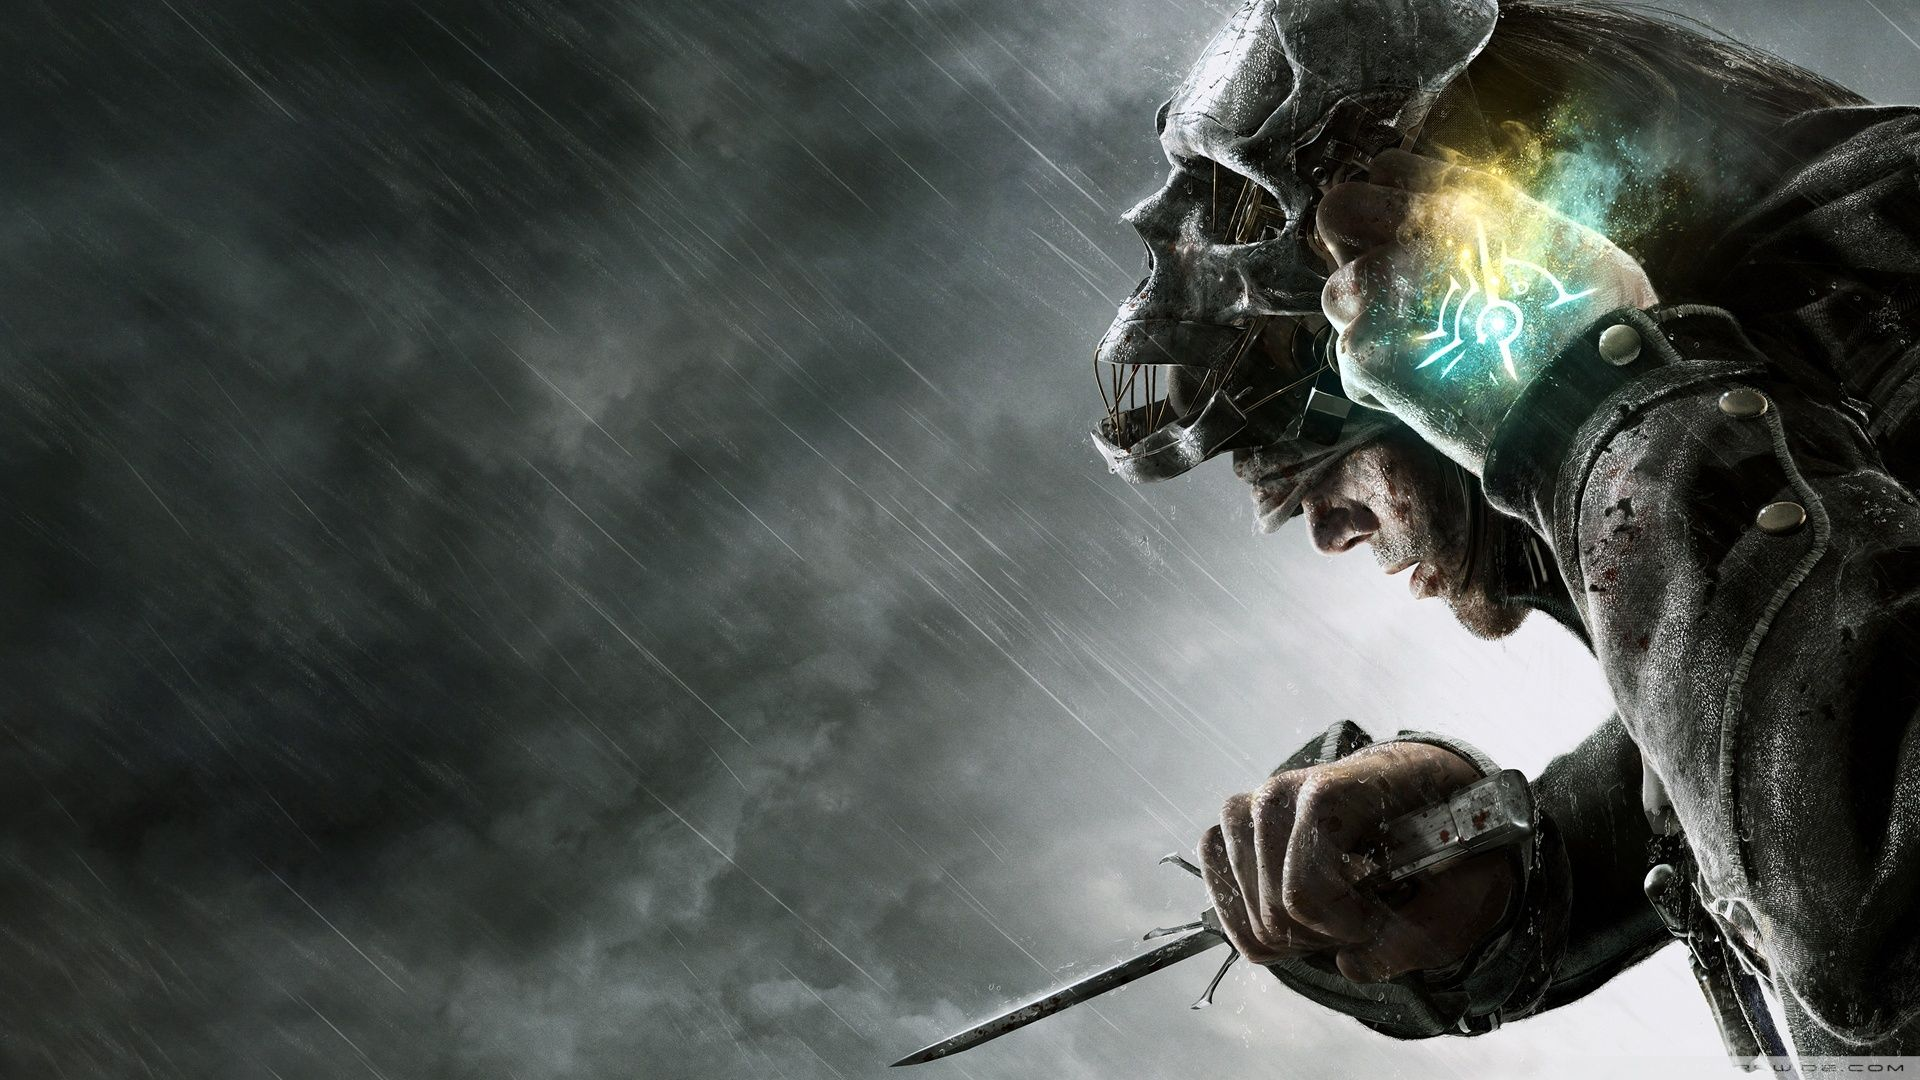 Dishonored Wallpapers Top Free Dishonored Backgrounds Wallpaperaccess